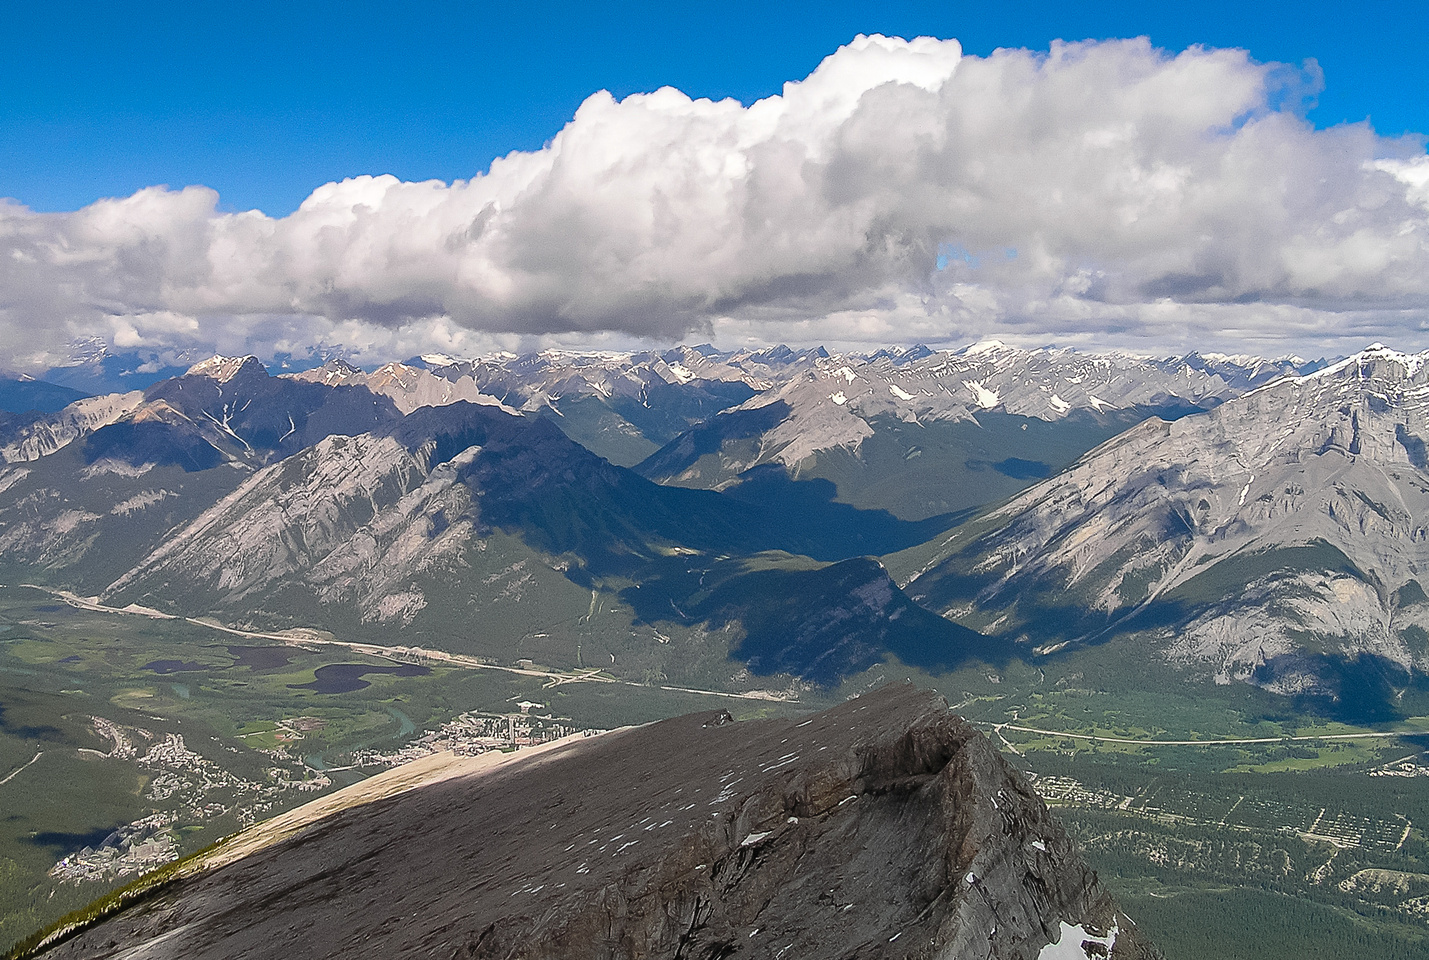 Cory (L), Norquay, Brewster and Cascade rise over the town of Banff.